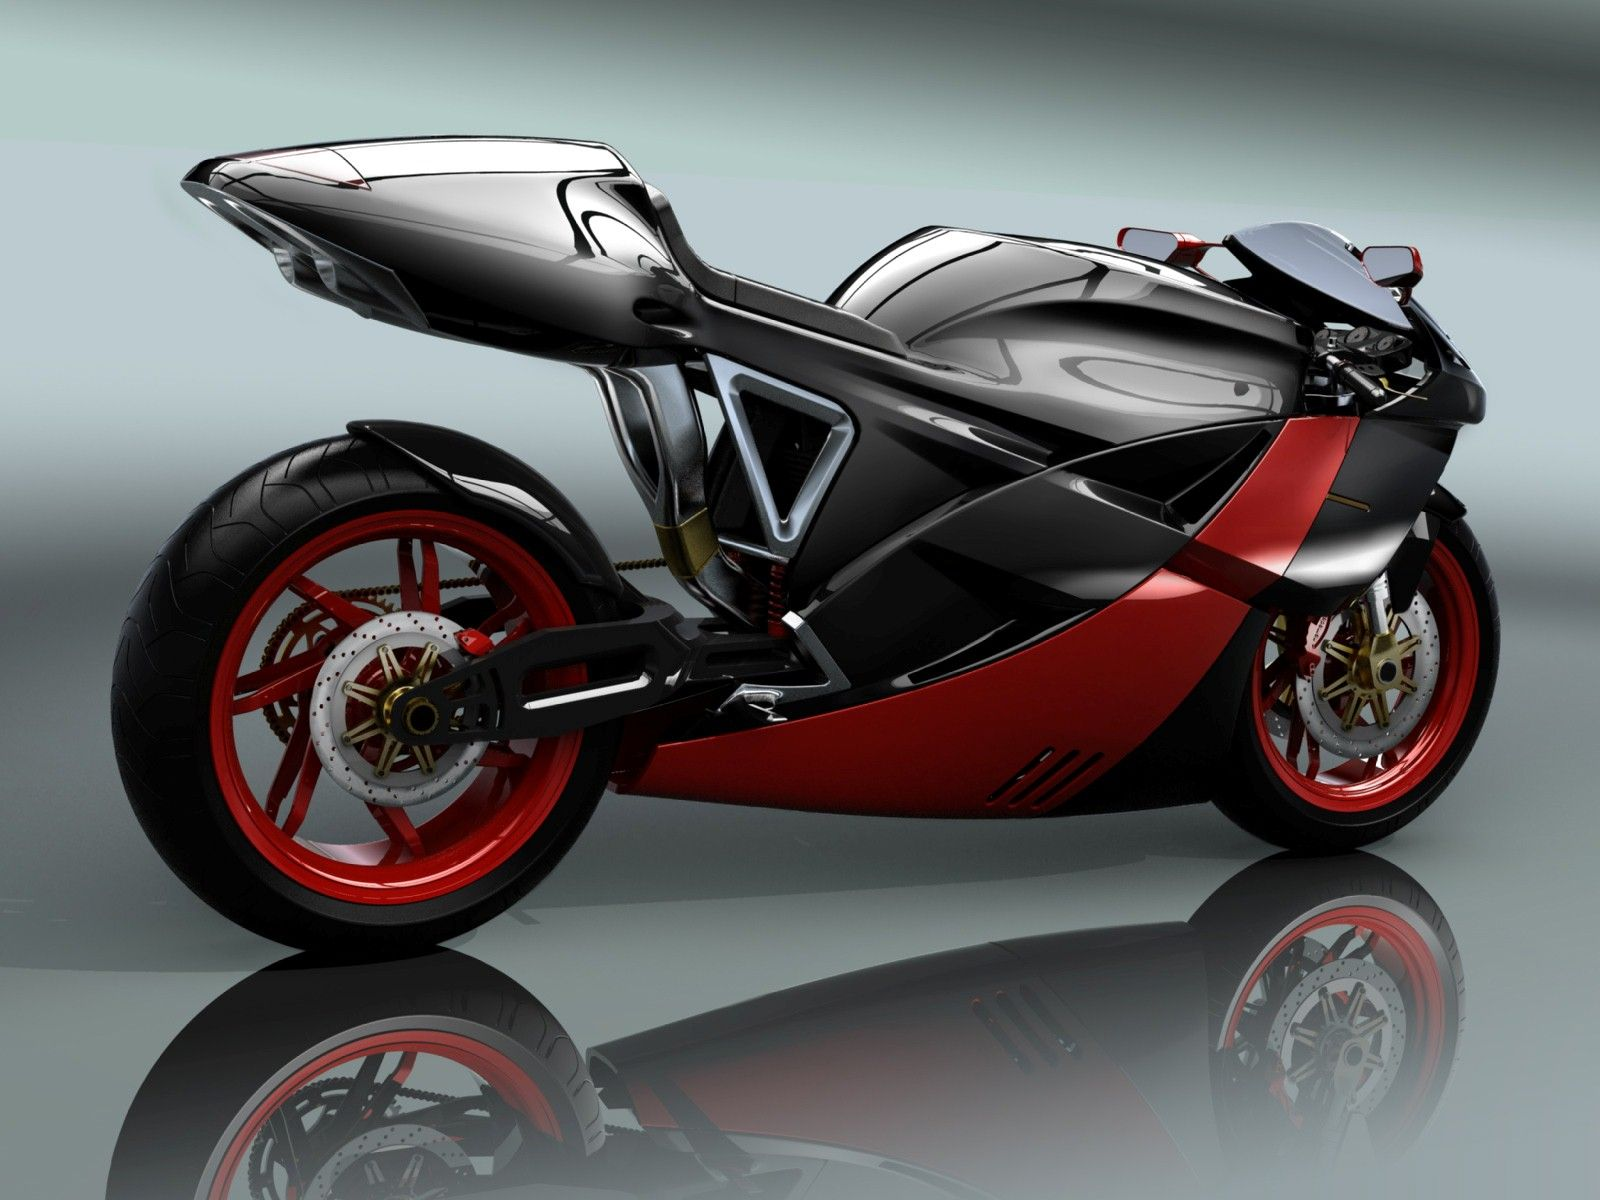 Super Latest New Red And Black Concept Bike Wallpaper Hd Famous